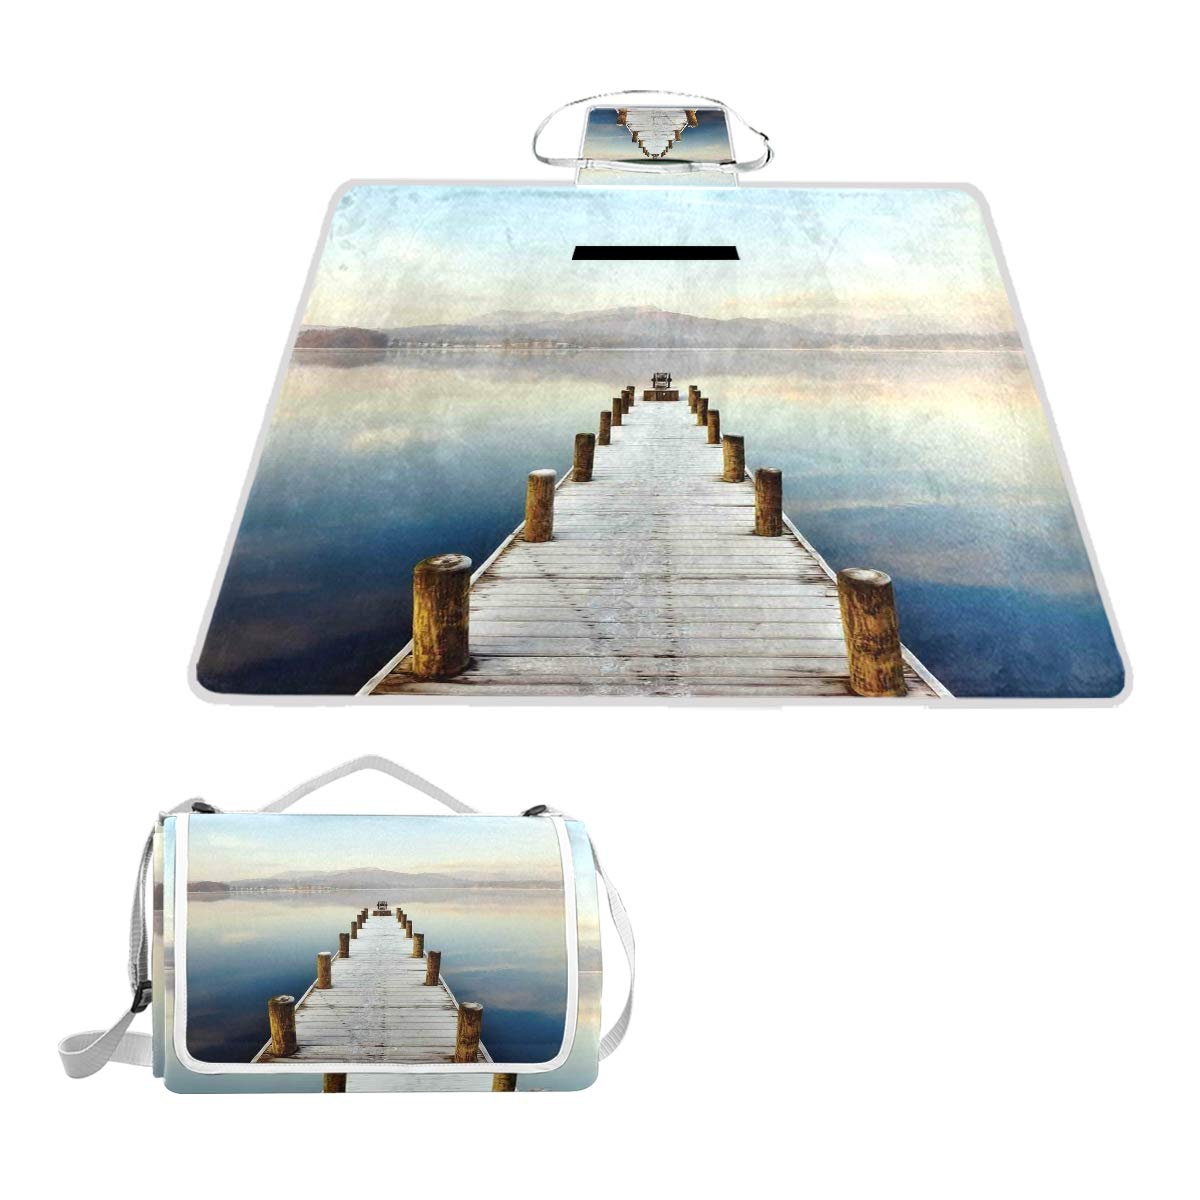 KVMV Wooden Jetty to Lake with Distant Hills Seascape Tranquility Calm Scenery Picnic Mat Sandproof and Waterproof Outdoor Picnic Blanket for Camping Hiking Beach Grass Travel by KVMV